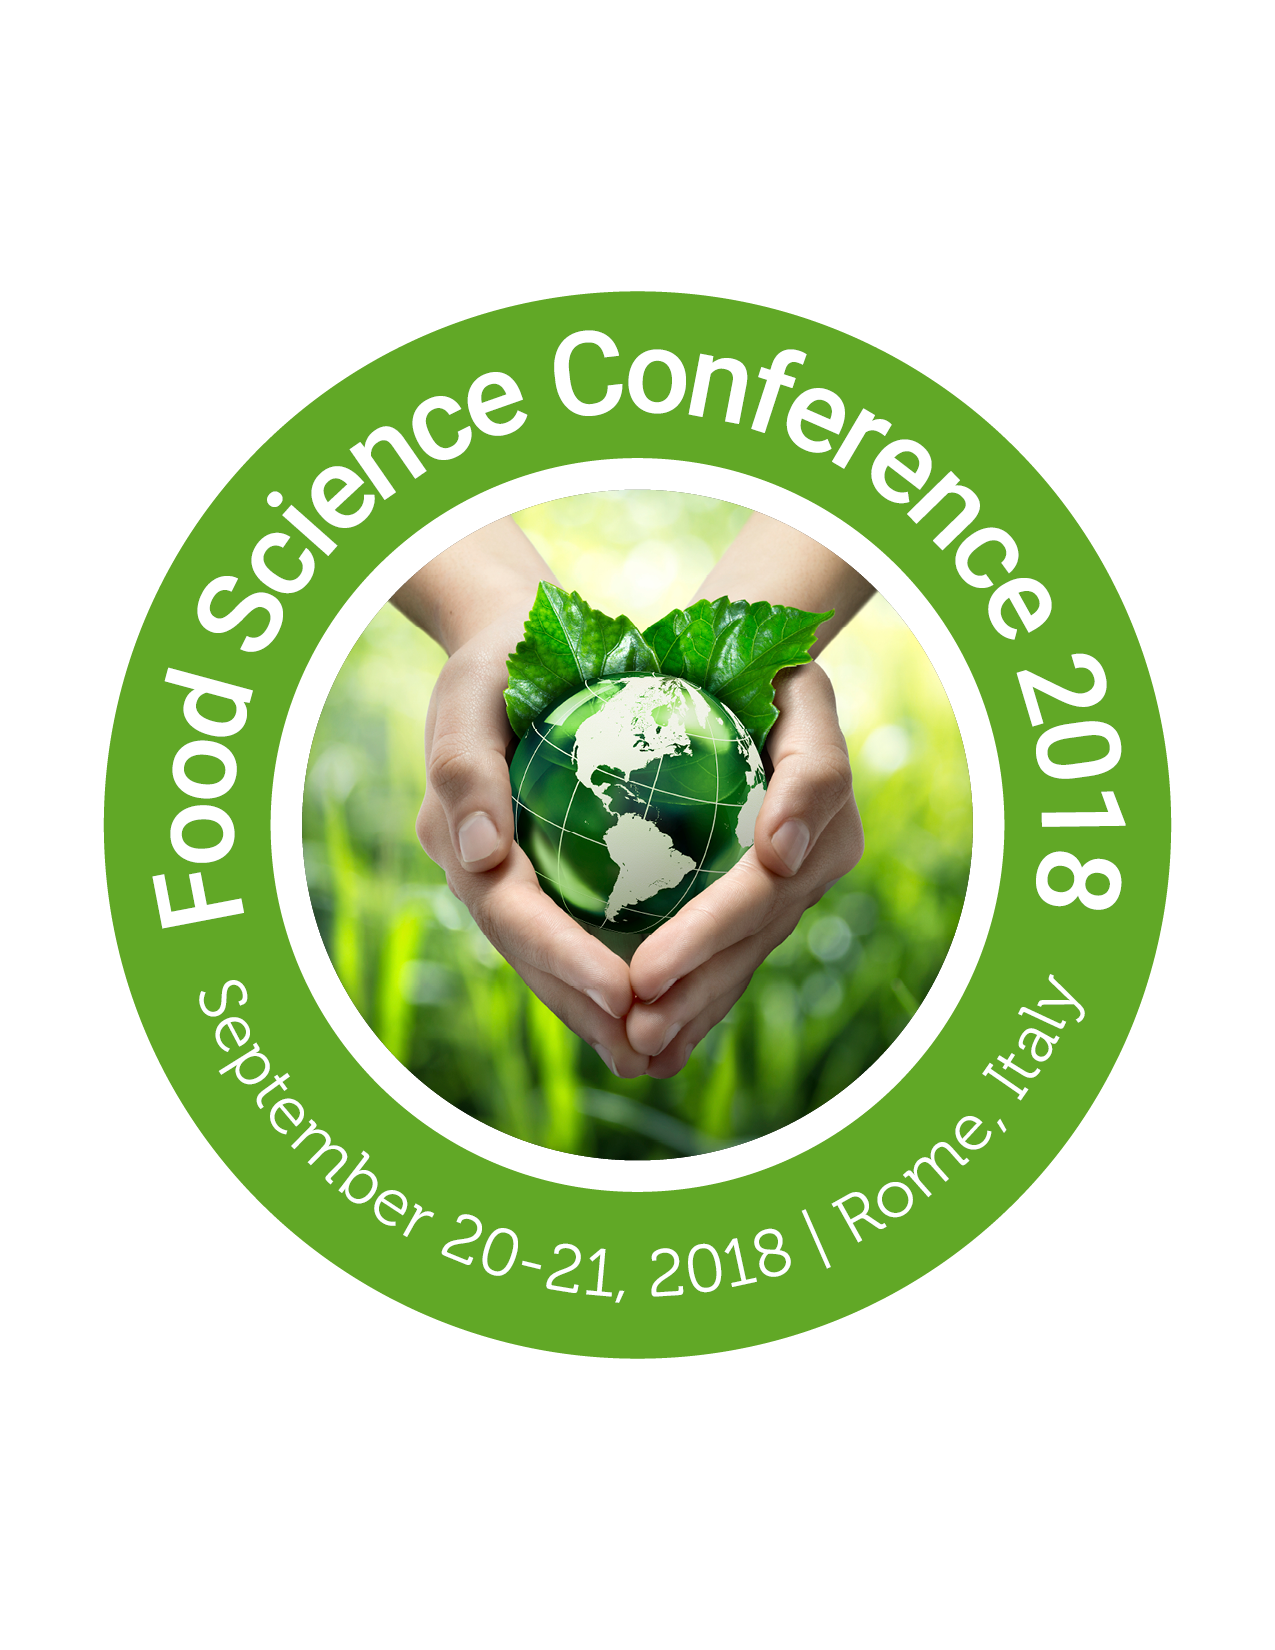 Food Science Conference 2018